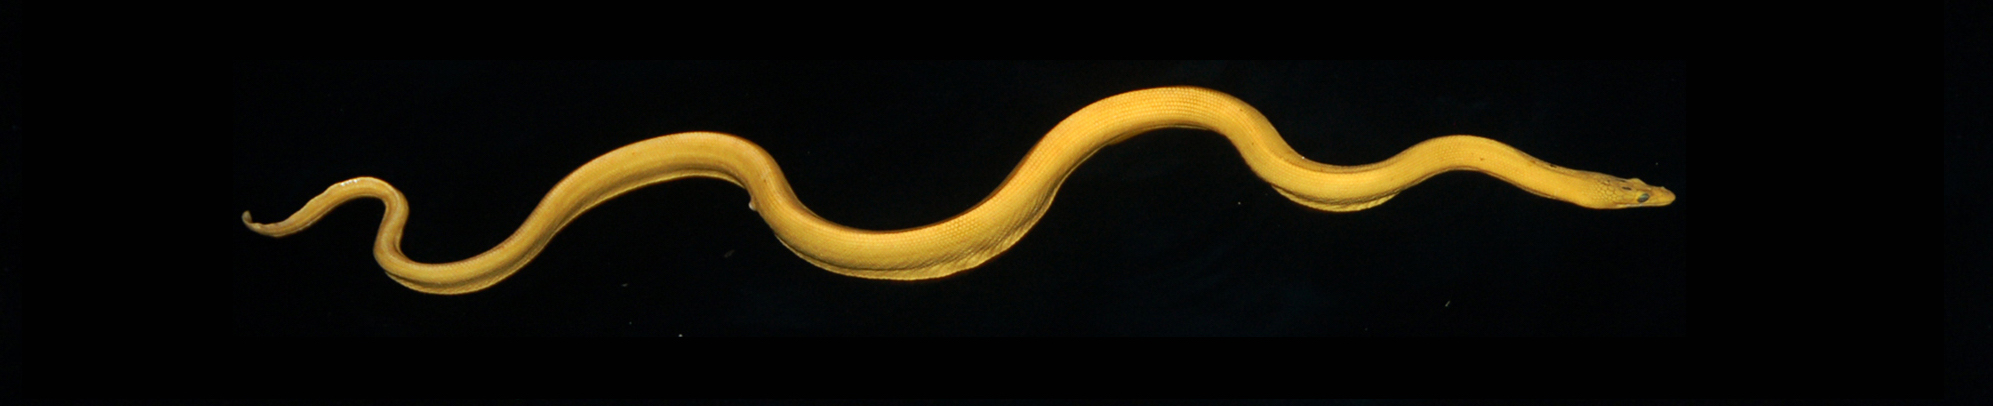 The Many Unique Features of the Yellow Seasnake – Such as Its Hunt